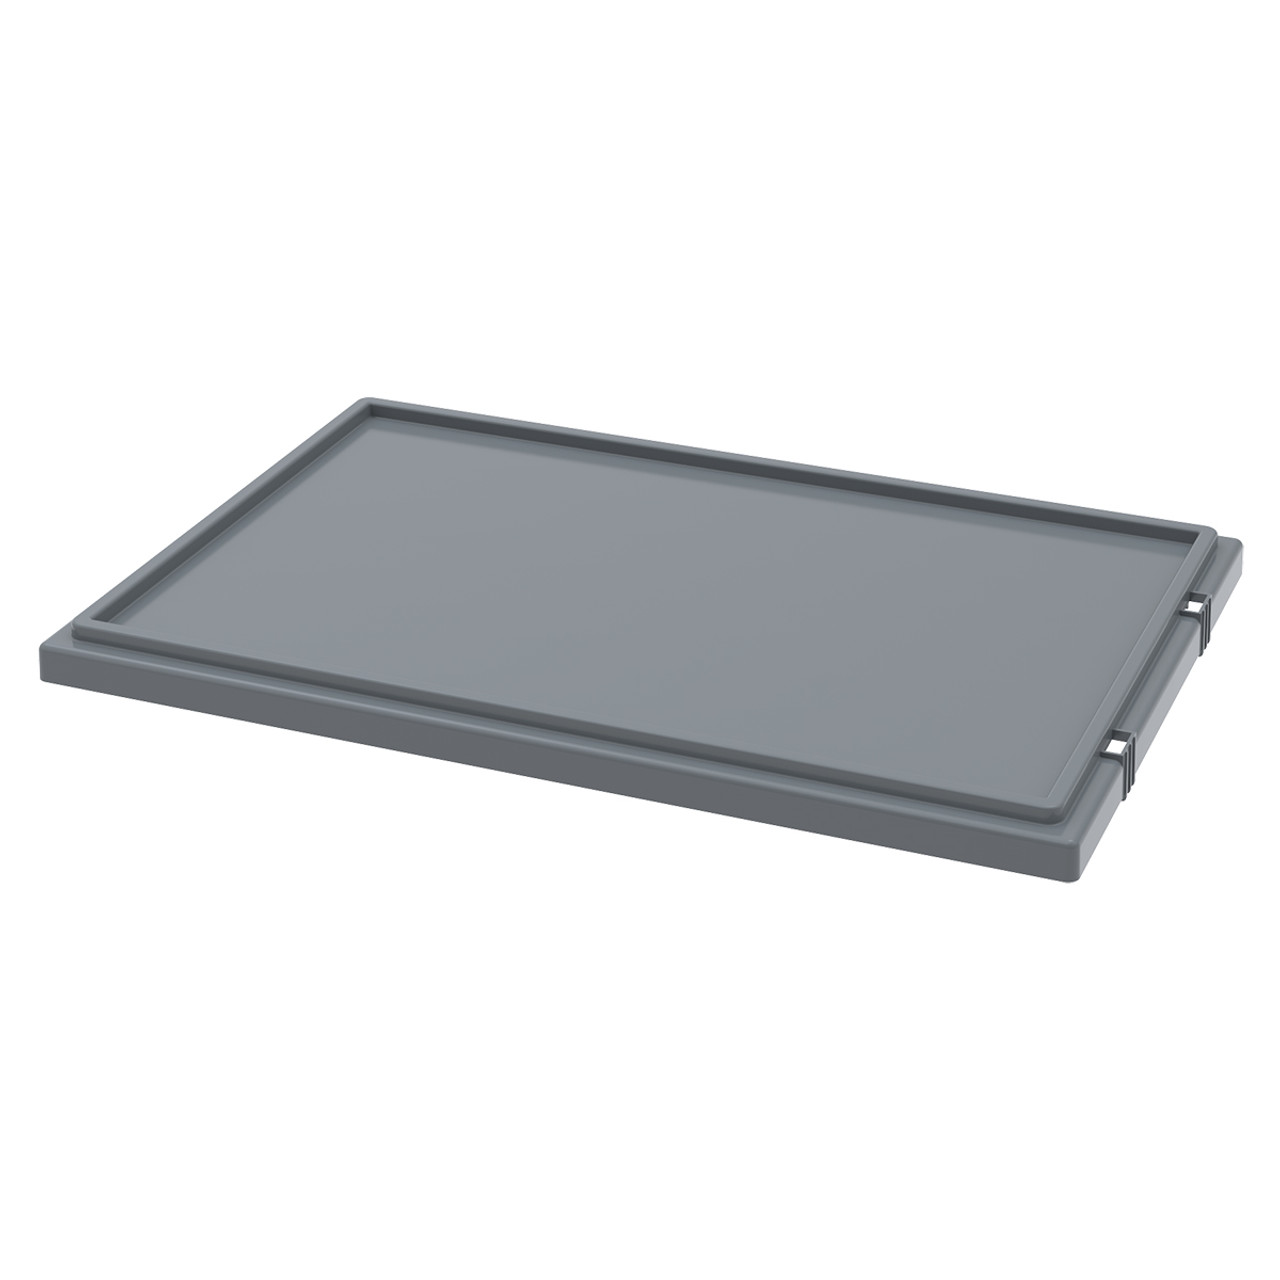 Lid for Nest & Stack Totes 35300, Gray  35301GREY